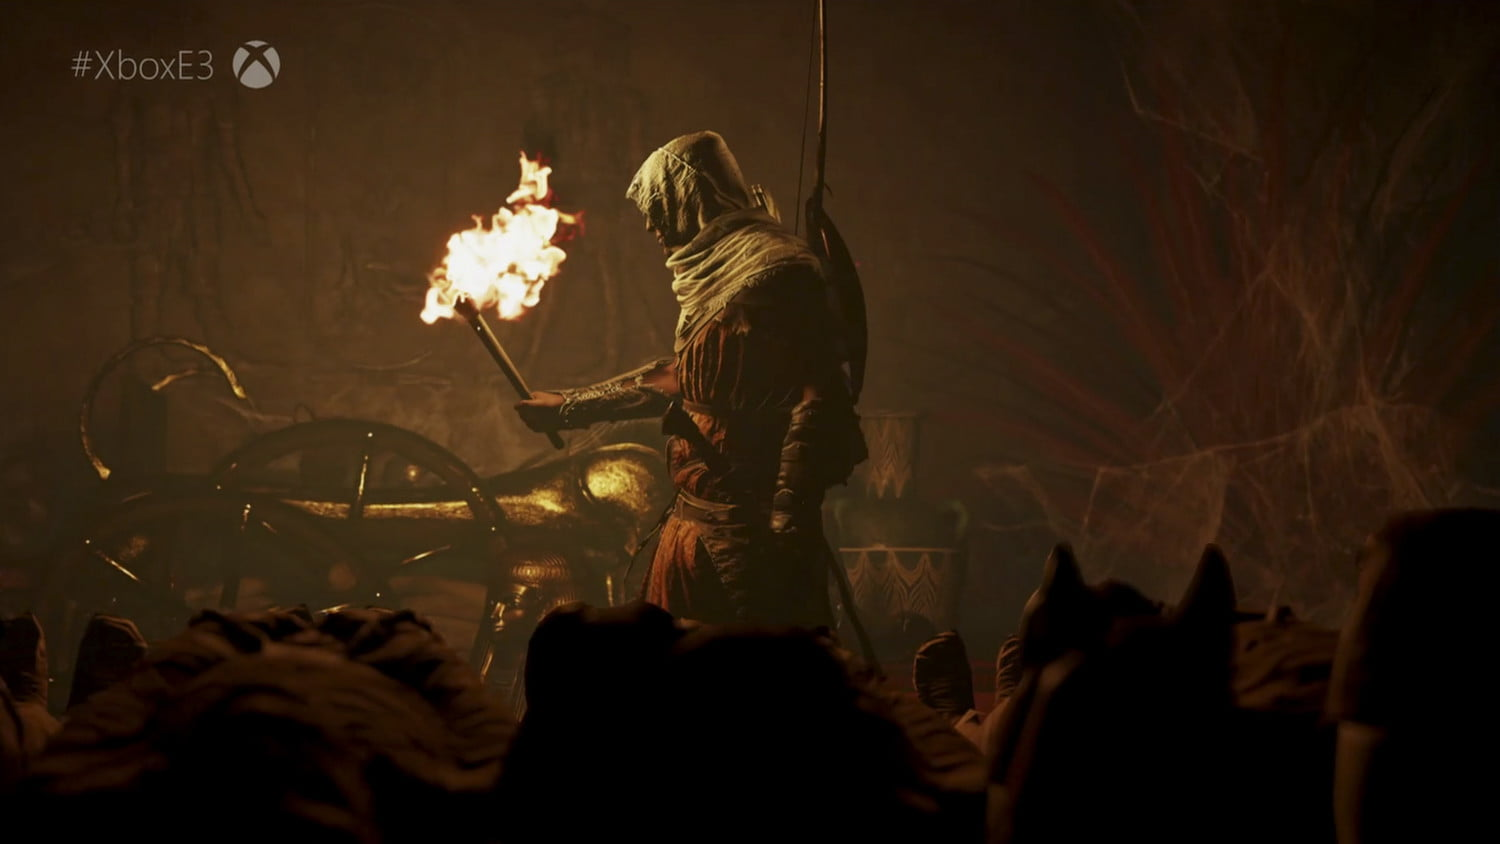 Assassin's Creed Origins': Settings, Release Date, and More